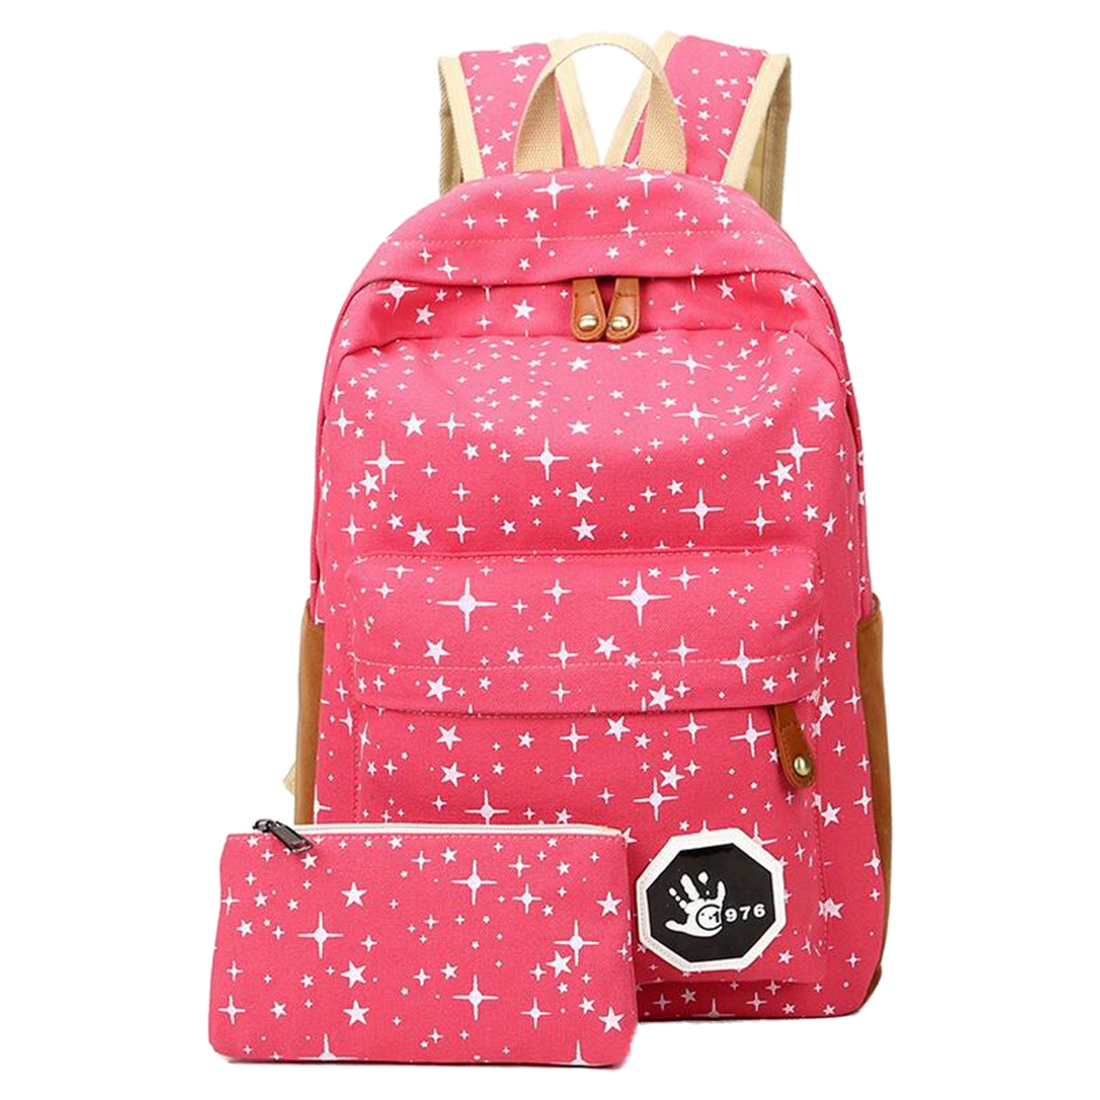 2 Pcs/Set Star Canvas Backpack School Girl Boy Teenagers Travel Bags Rucksack, Red